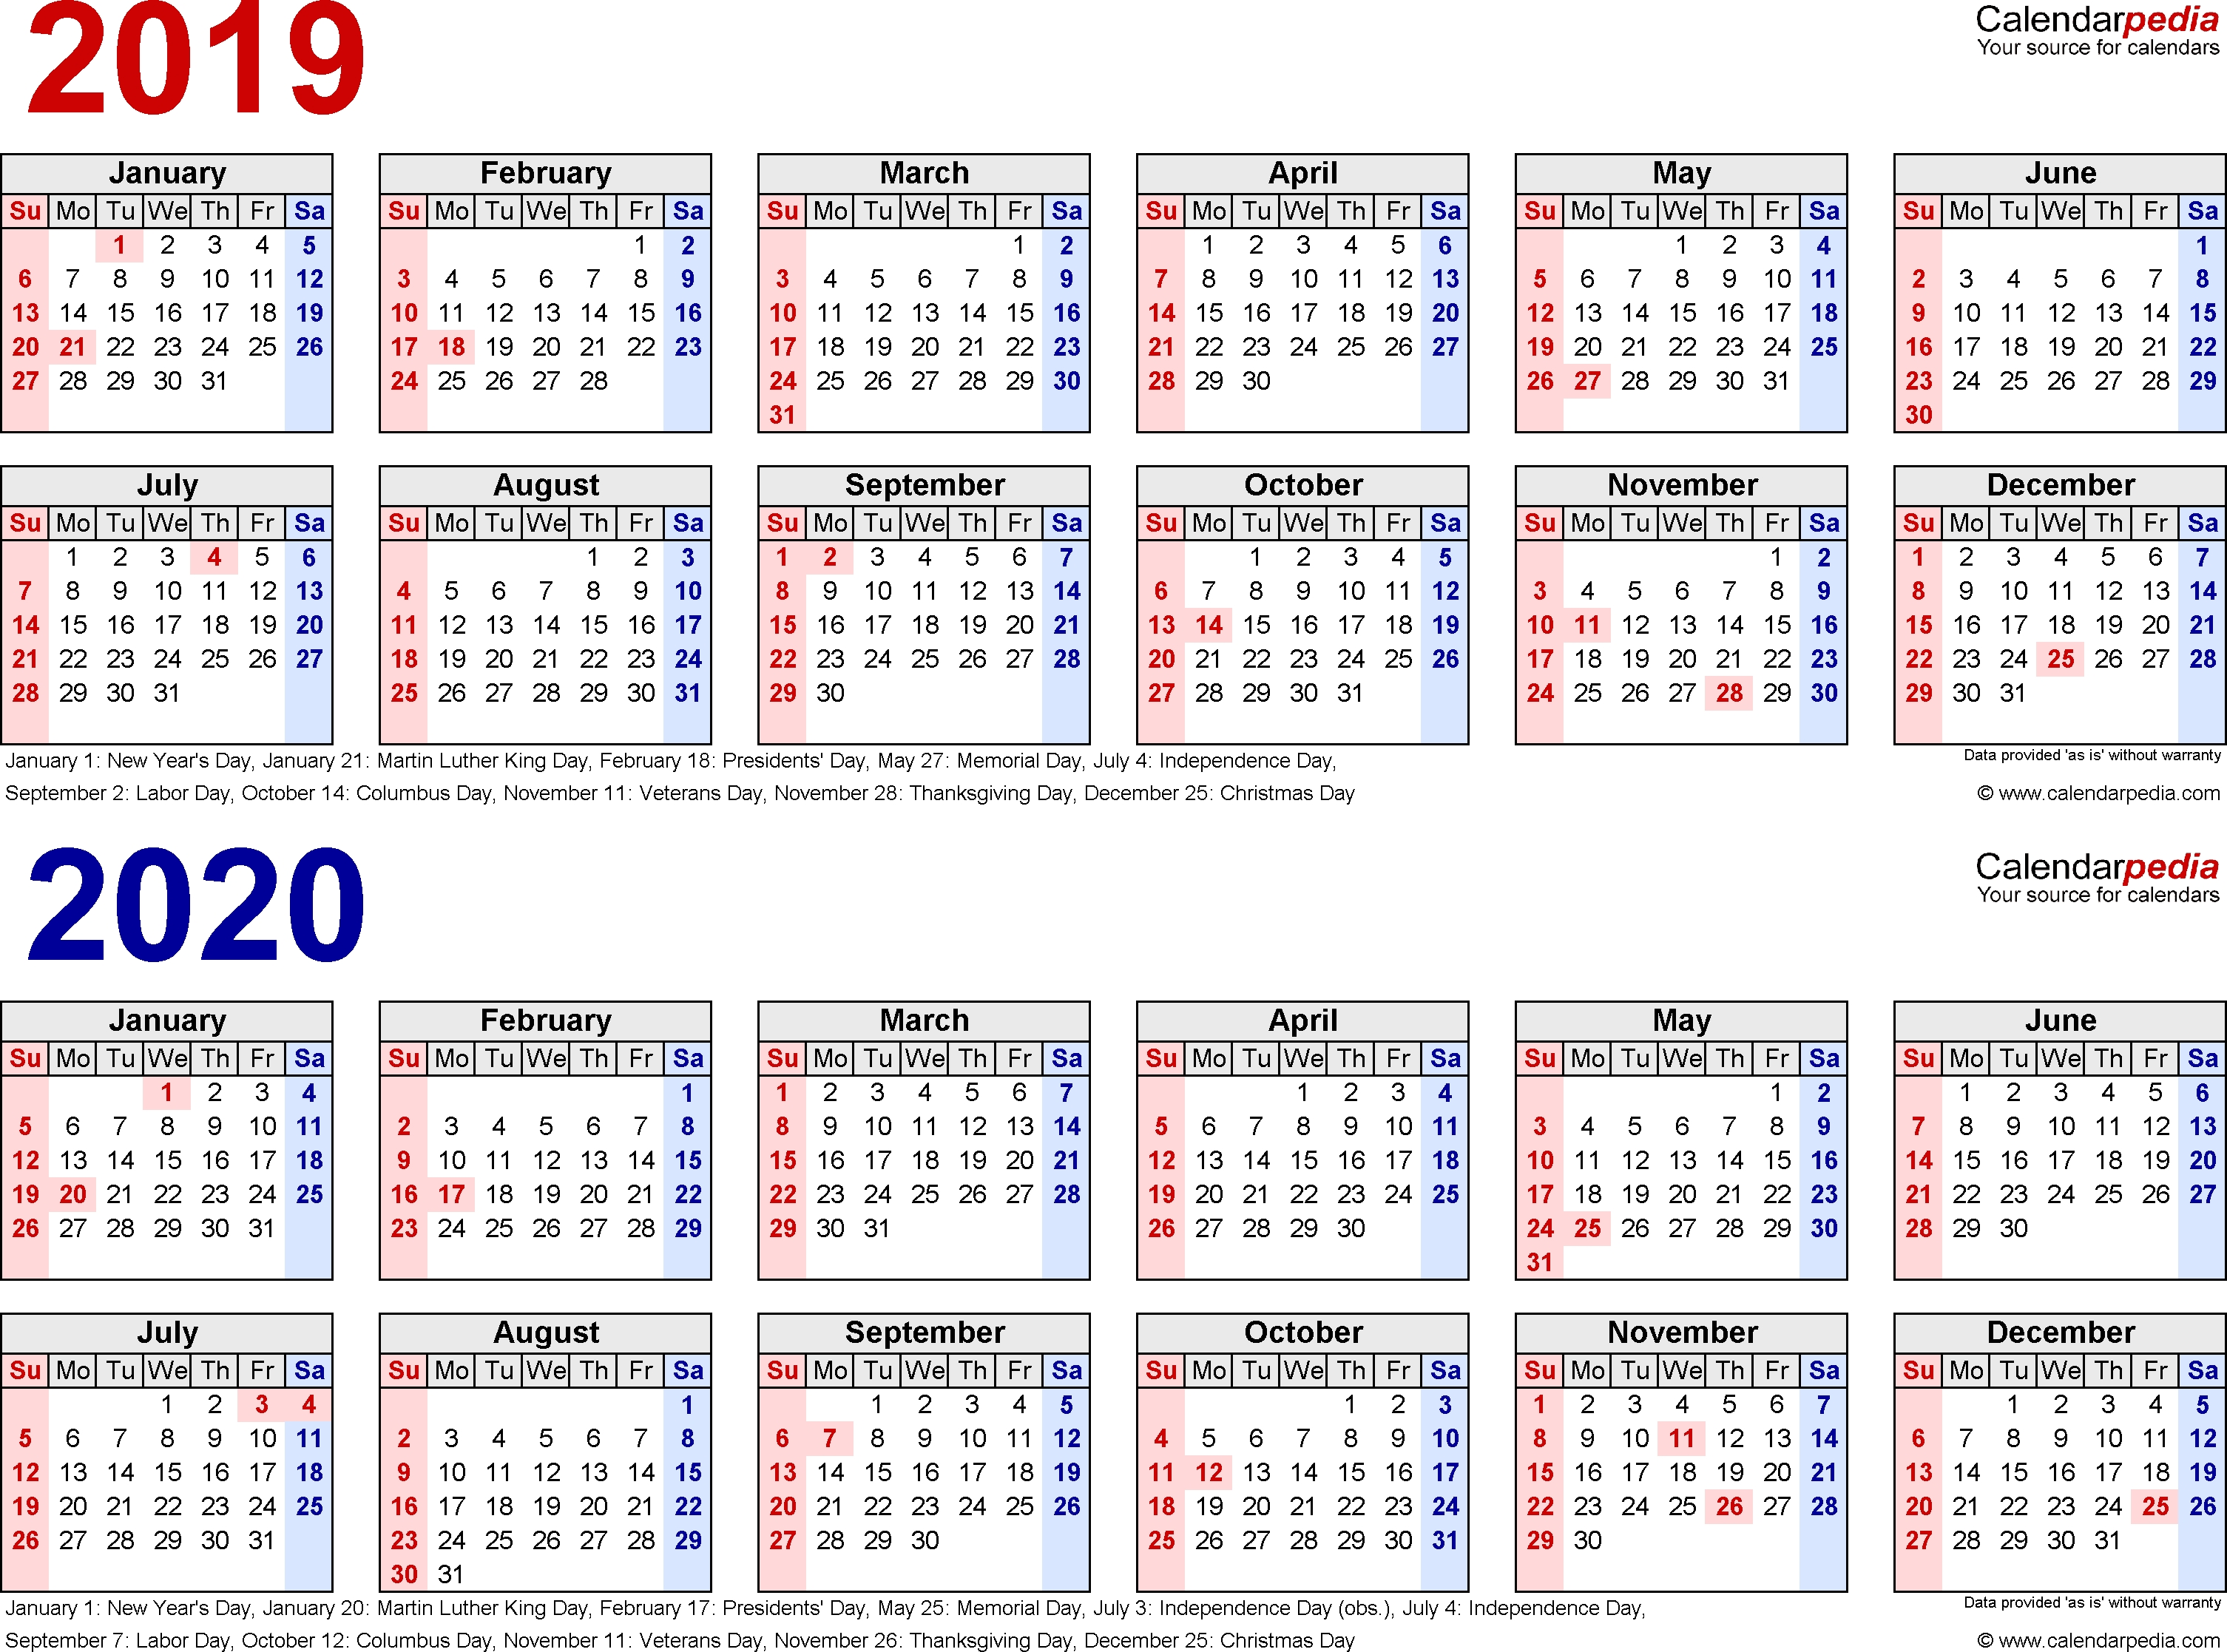 2019-2020 Calendar - Free Printable Two-Year Word Calendars intended for Printable Calendar July 2019 To June 2020